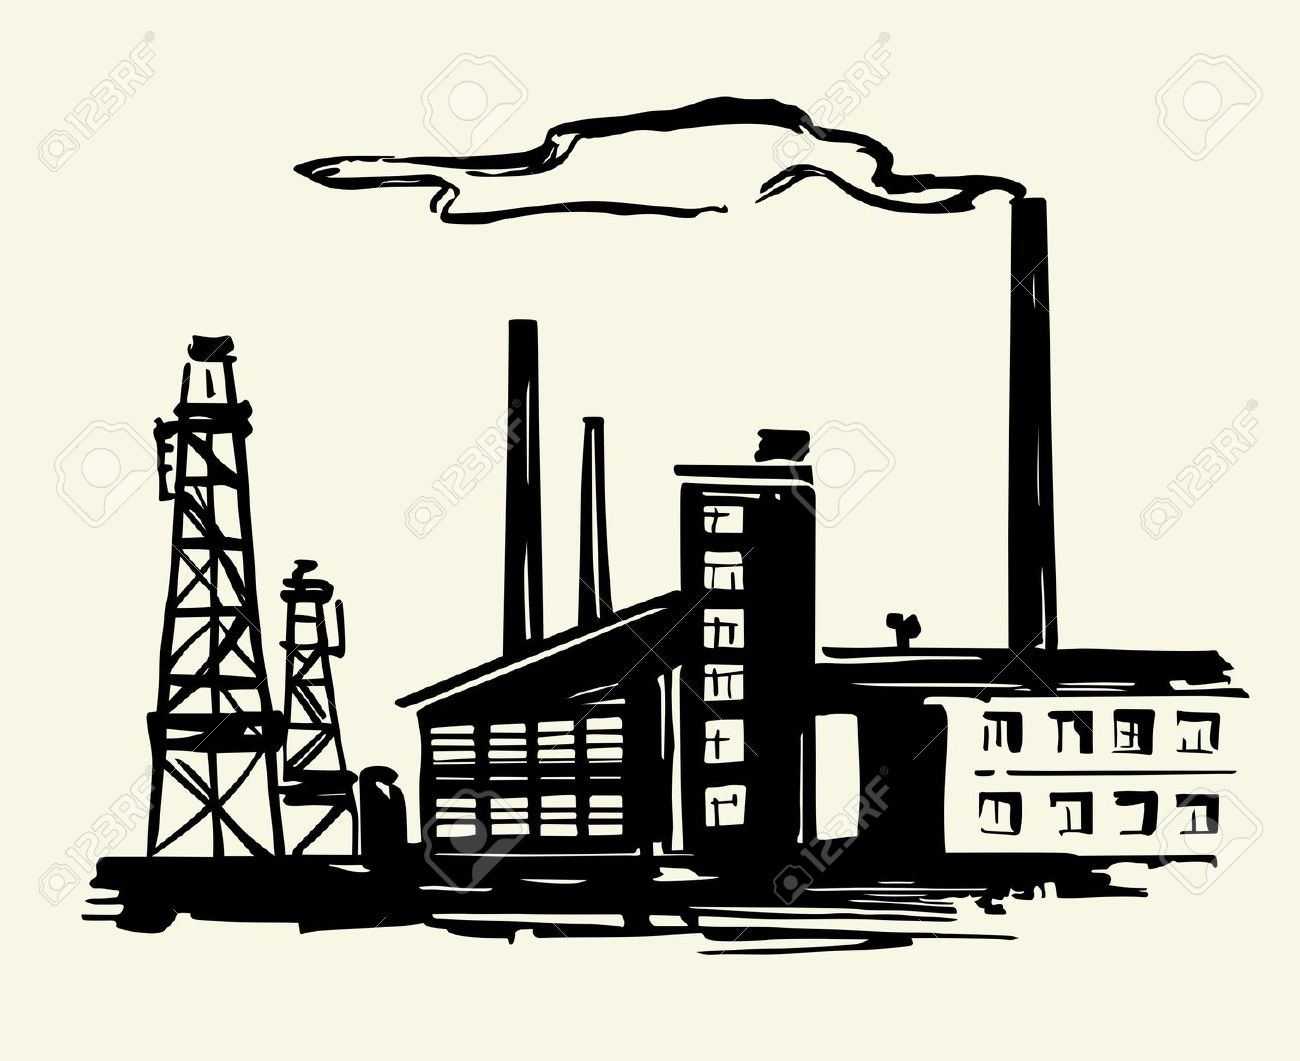 Factories Clip Art-Factories Clip Art-10